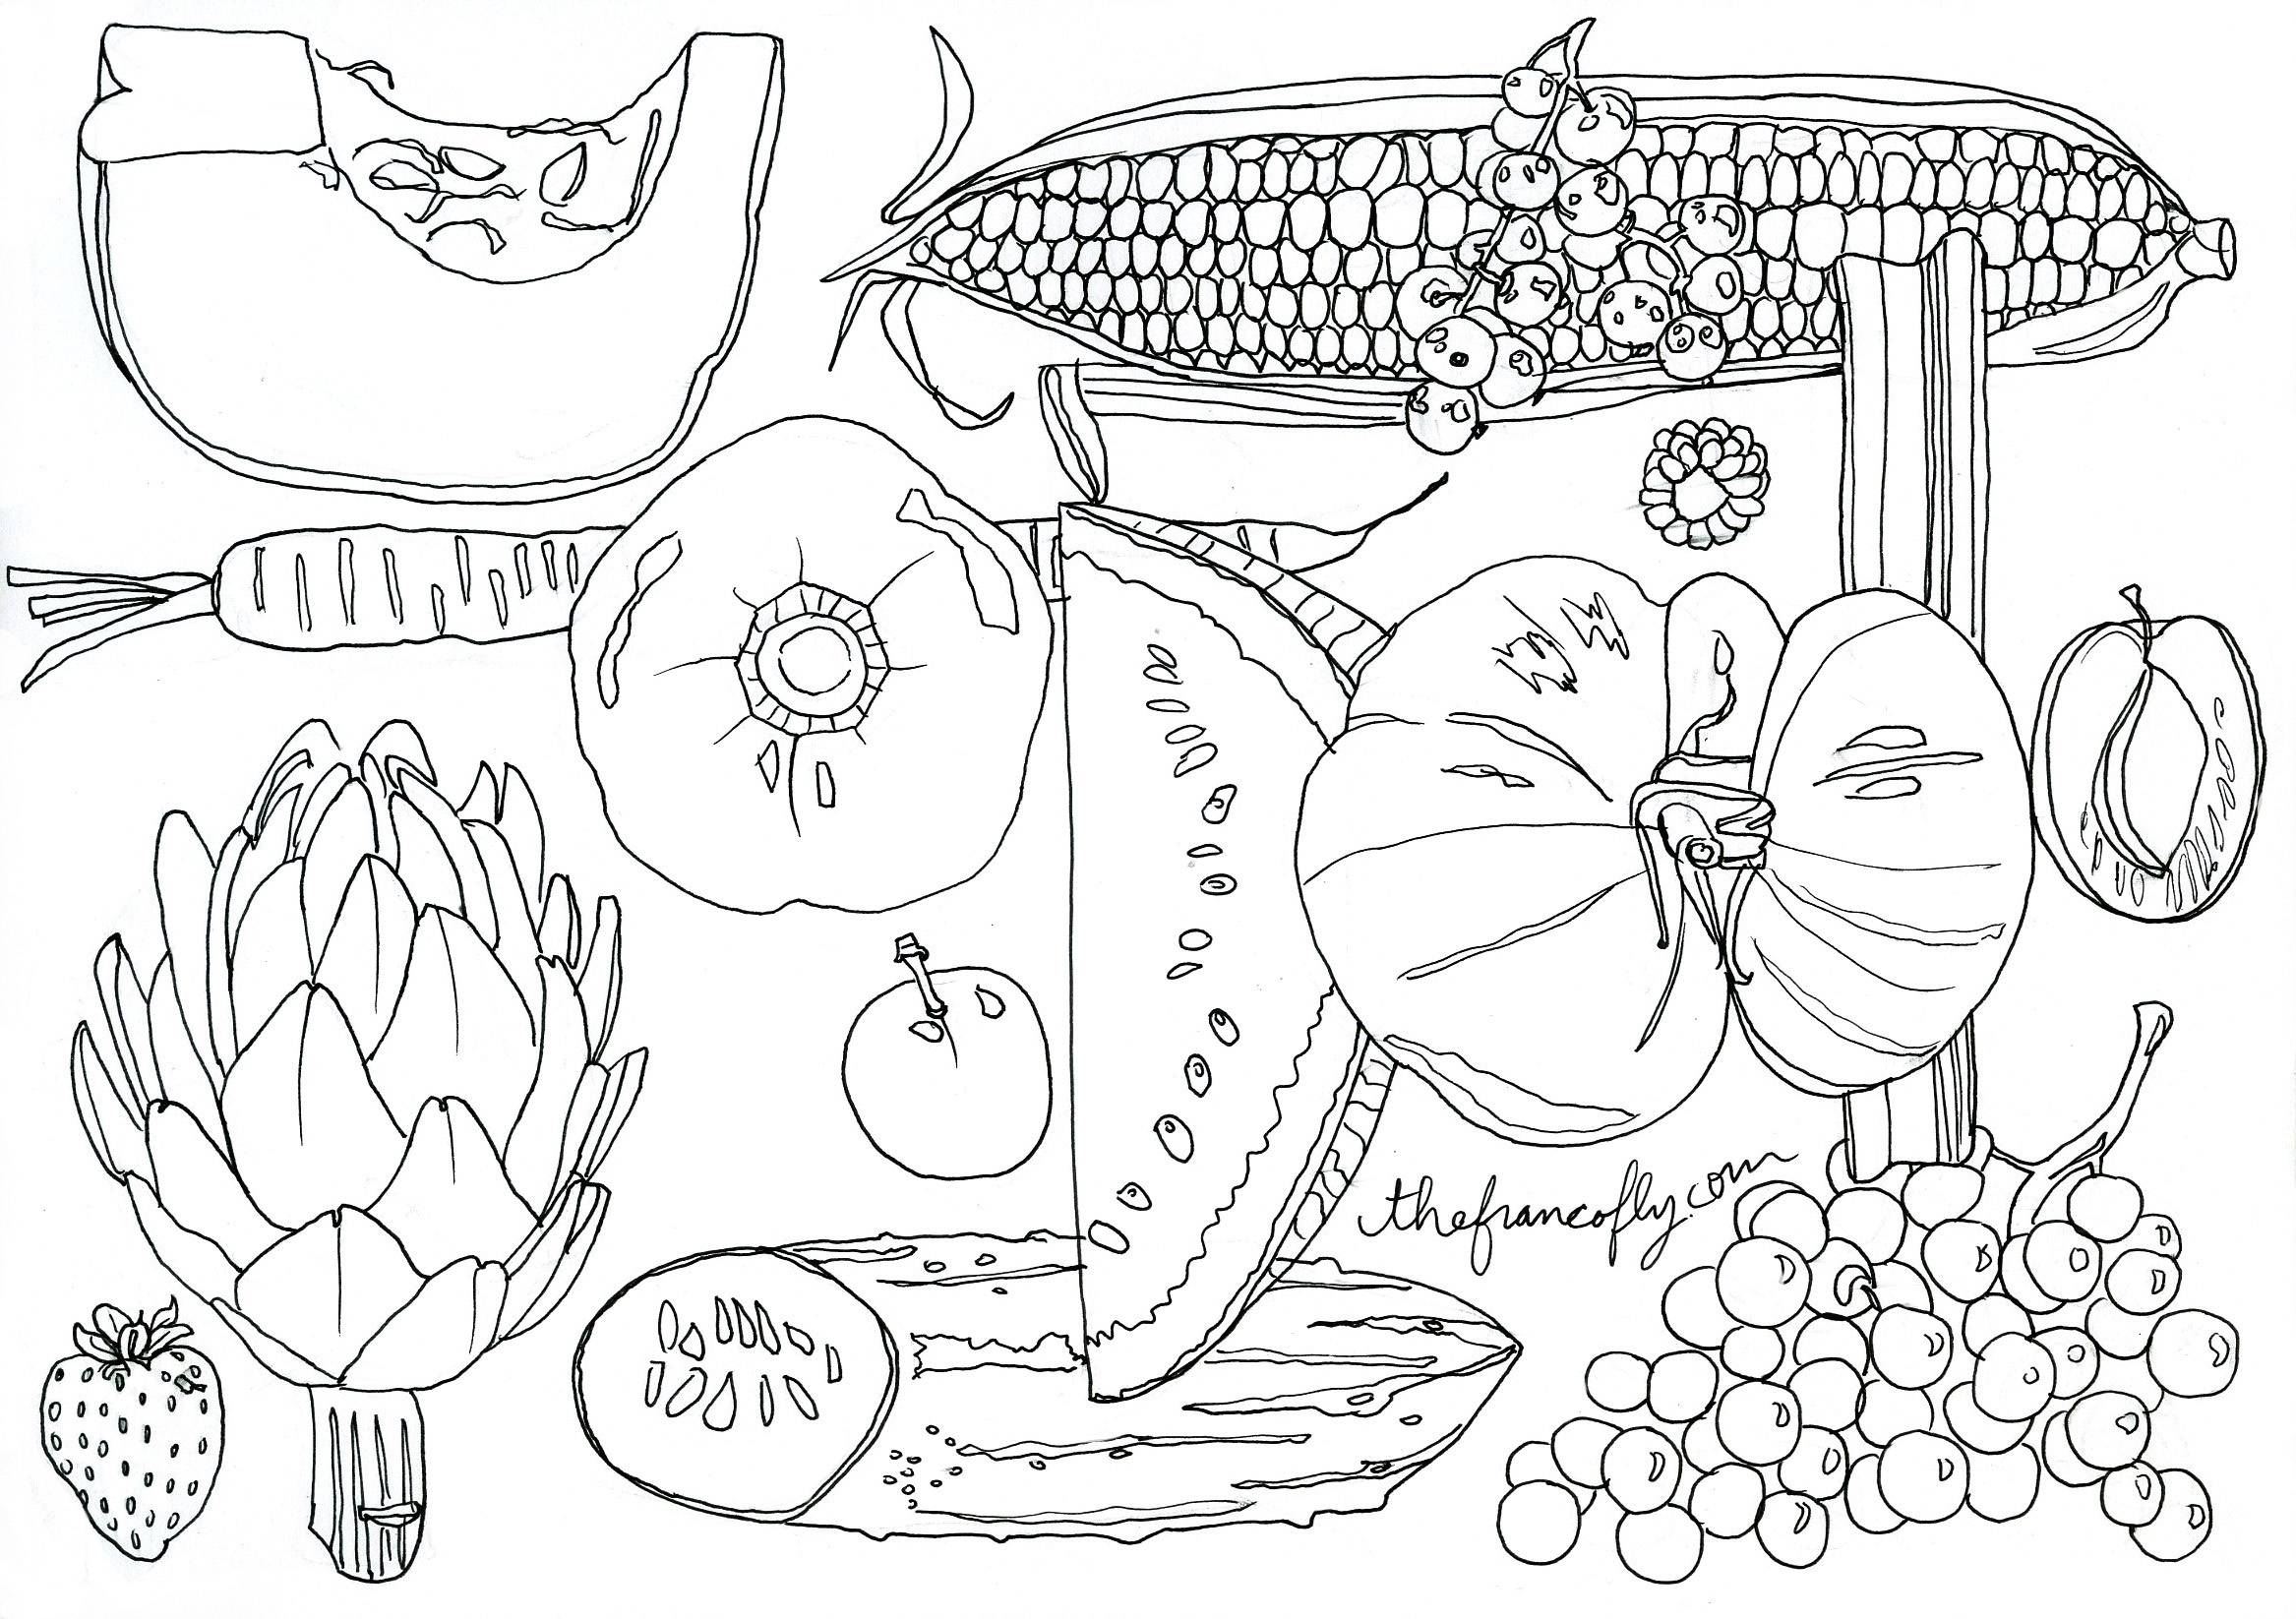 Coloring book pictures of vegetables - Jessie Kanelos Weiner Color Me Seasonal September Thefrancofly Com